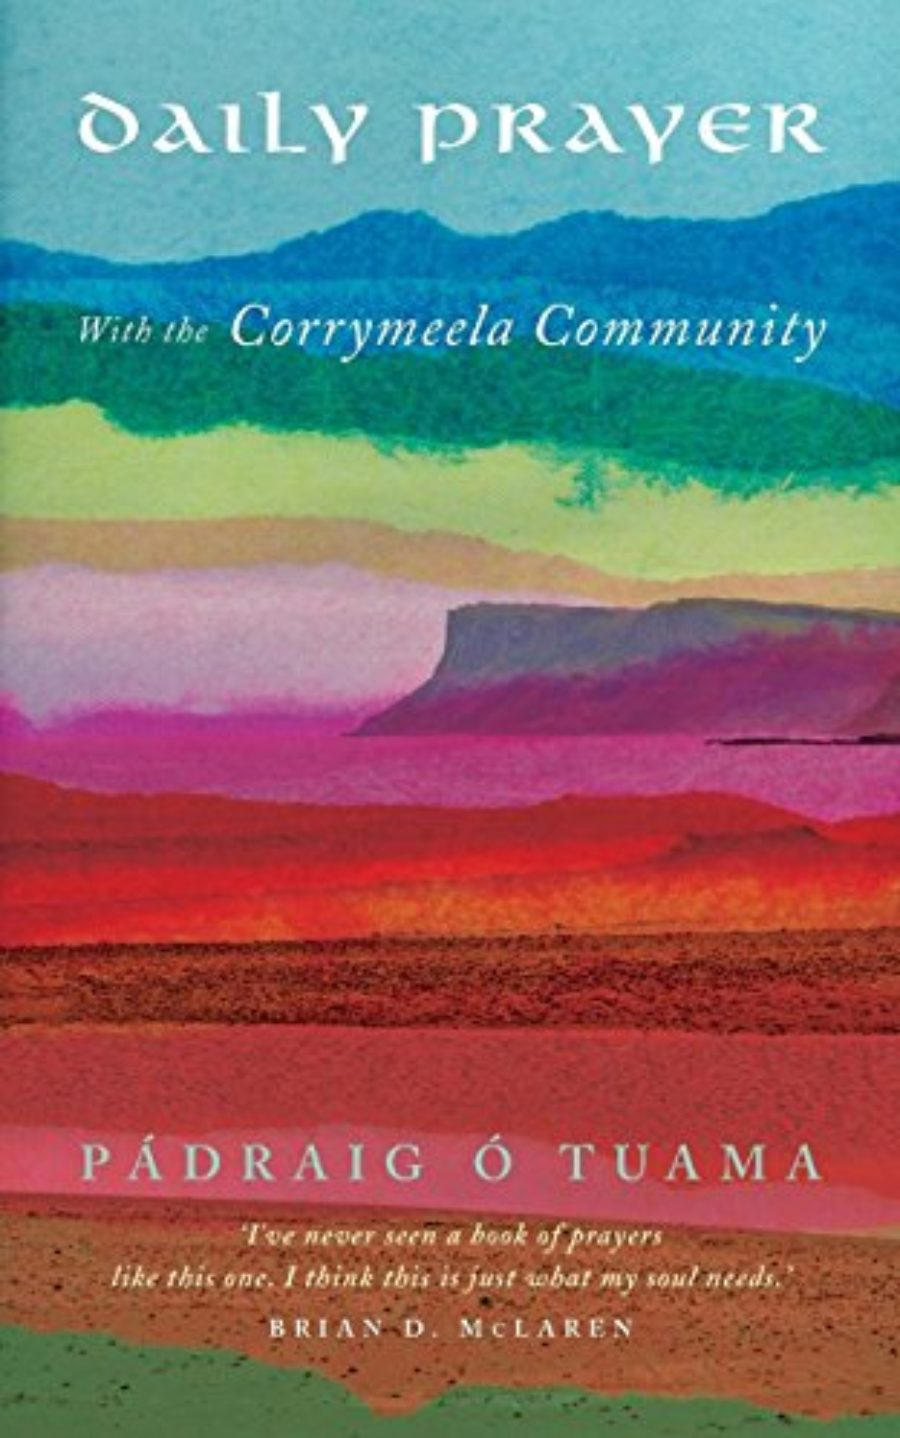 Cover of Daily Prayer with the Corrymeela Community